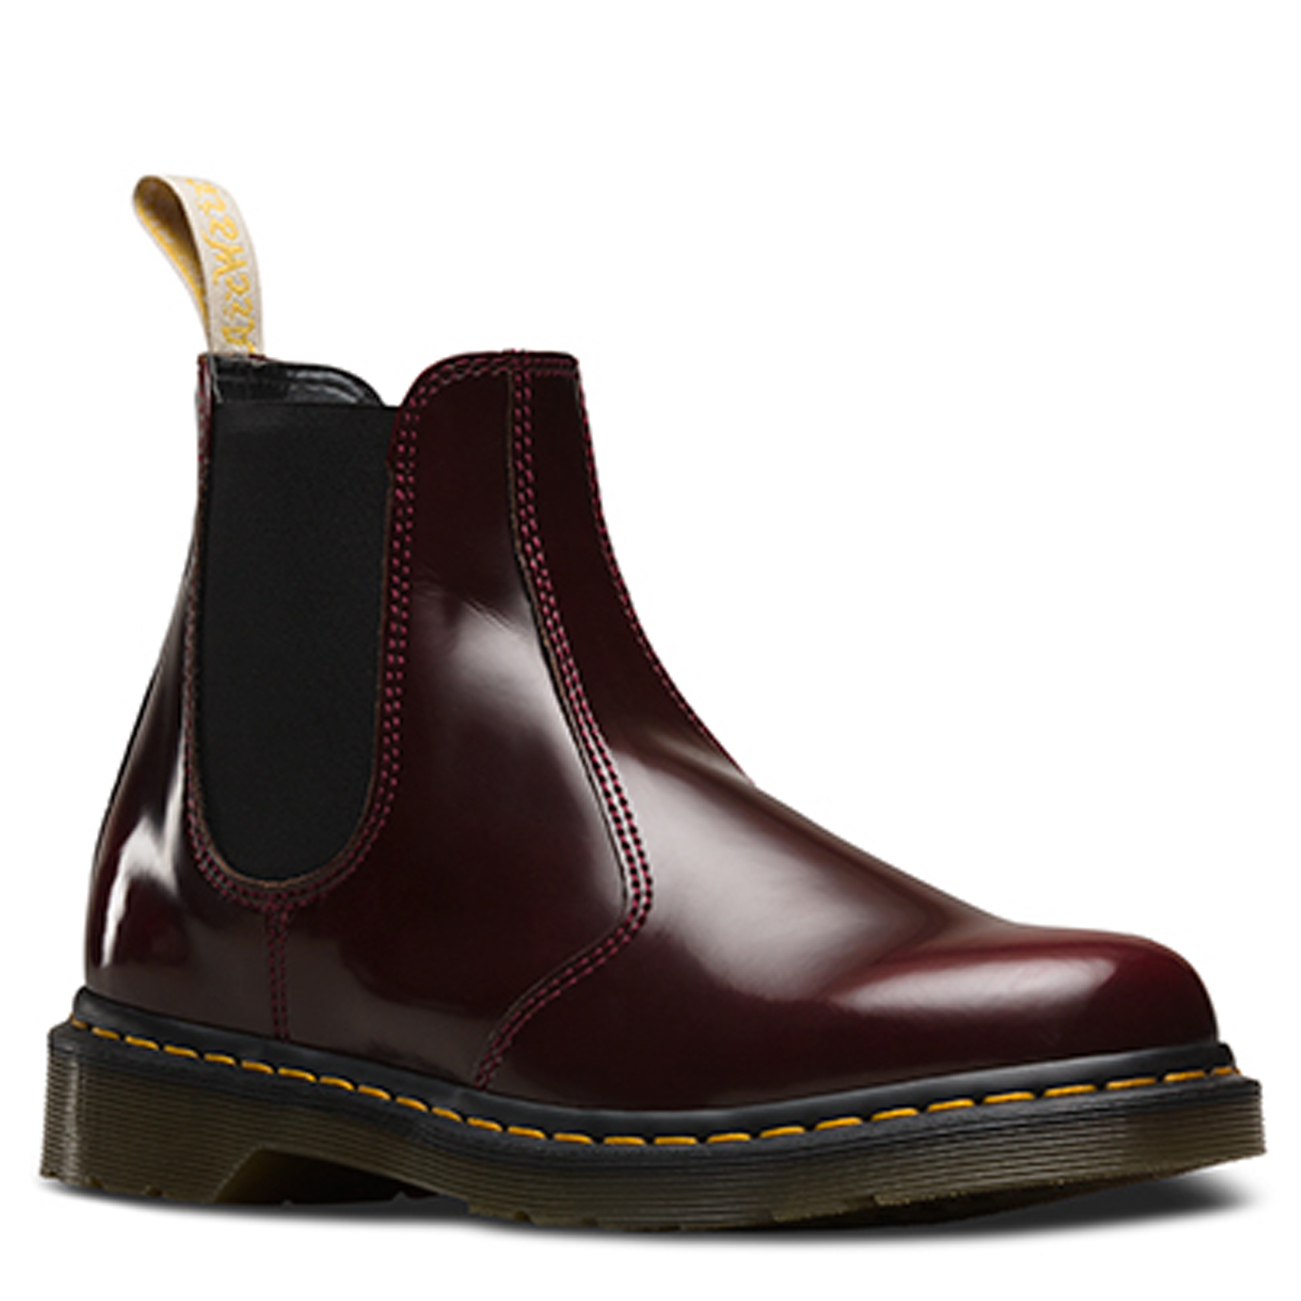 Unisex Adults Dr Martens 2976 Vegan Cambridge Brush